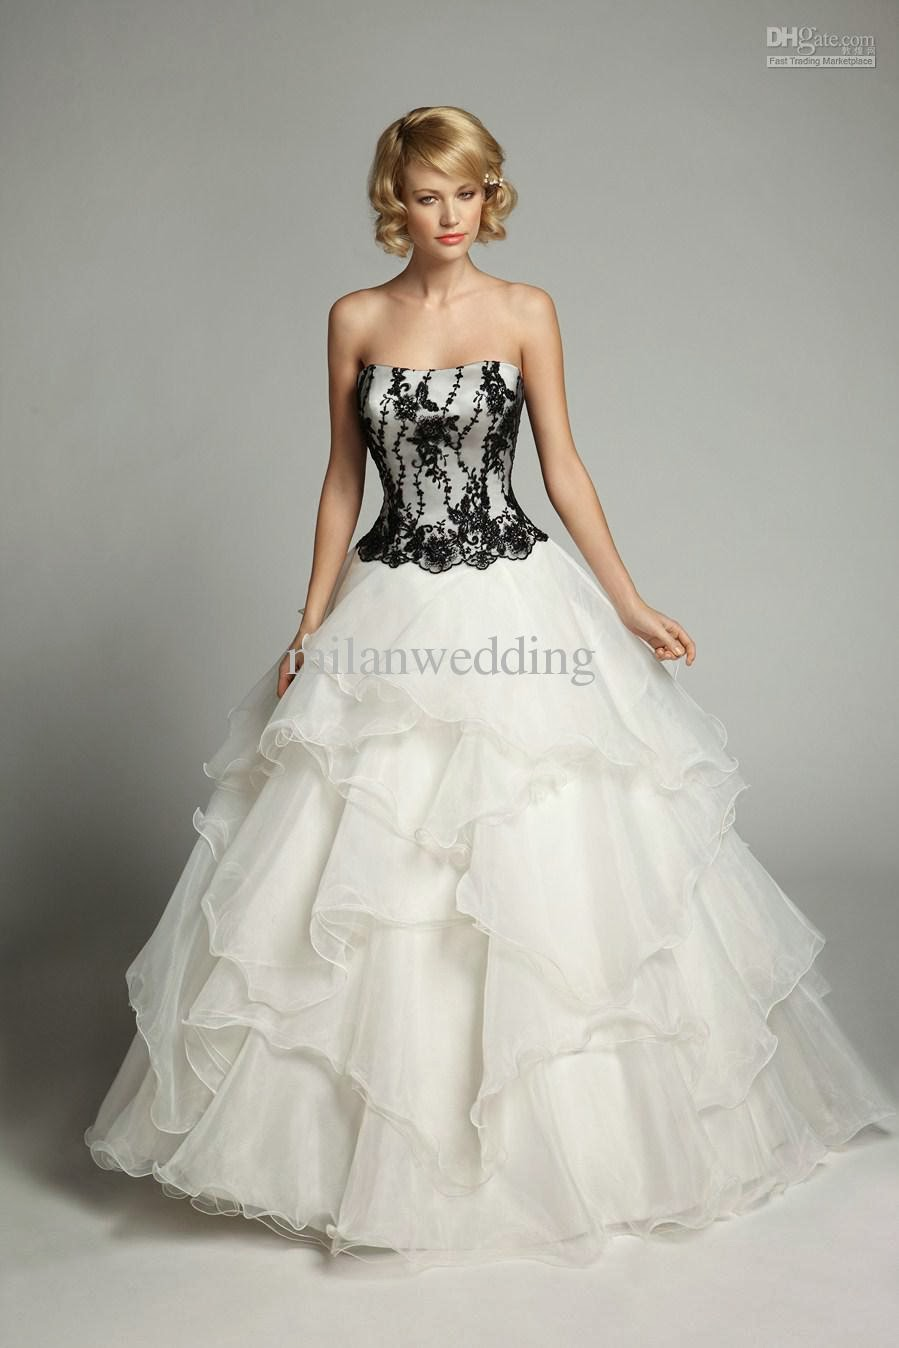 Not white wedding dresses cheap wedding dresses for Design my perfect wedding dress